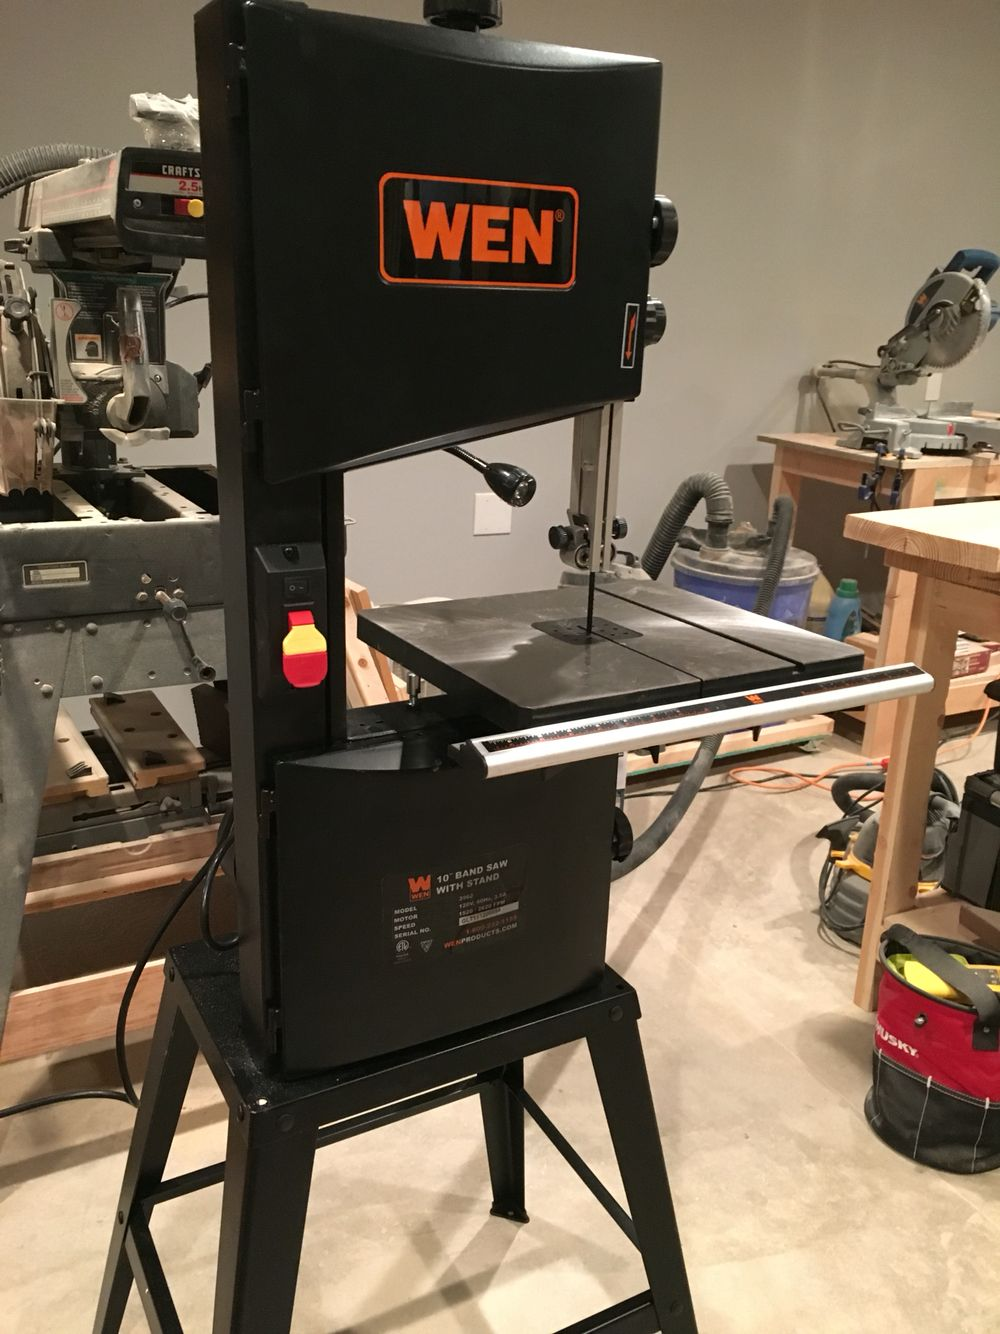 My New Wen Bandsaw Works Great Got It From Home Depot Wen Bandsaw Homedepot Bandsaw Home Depot Woodworking Plans